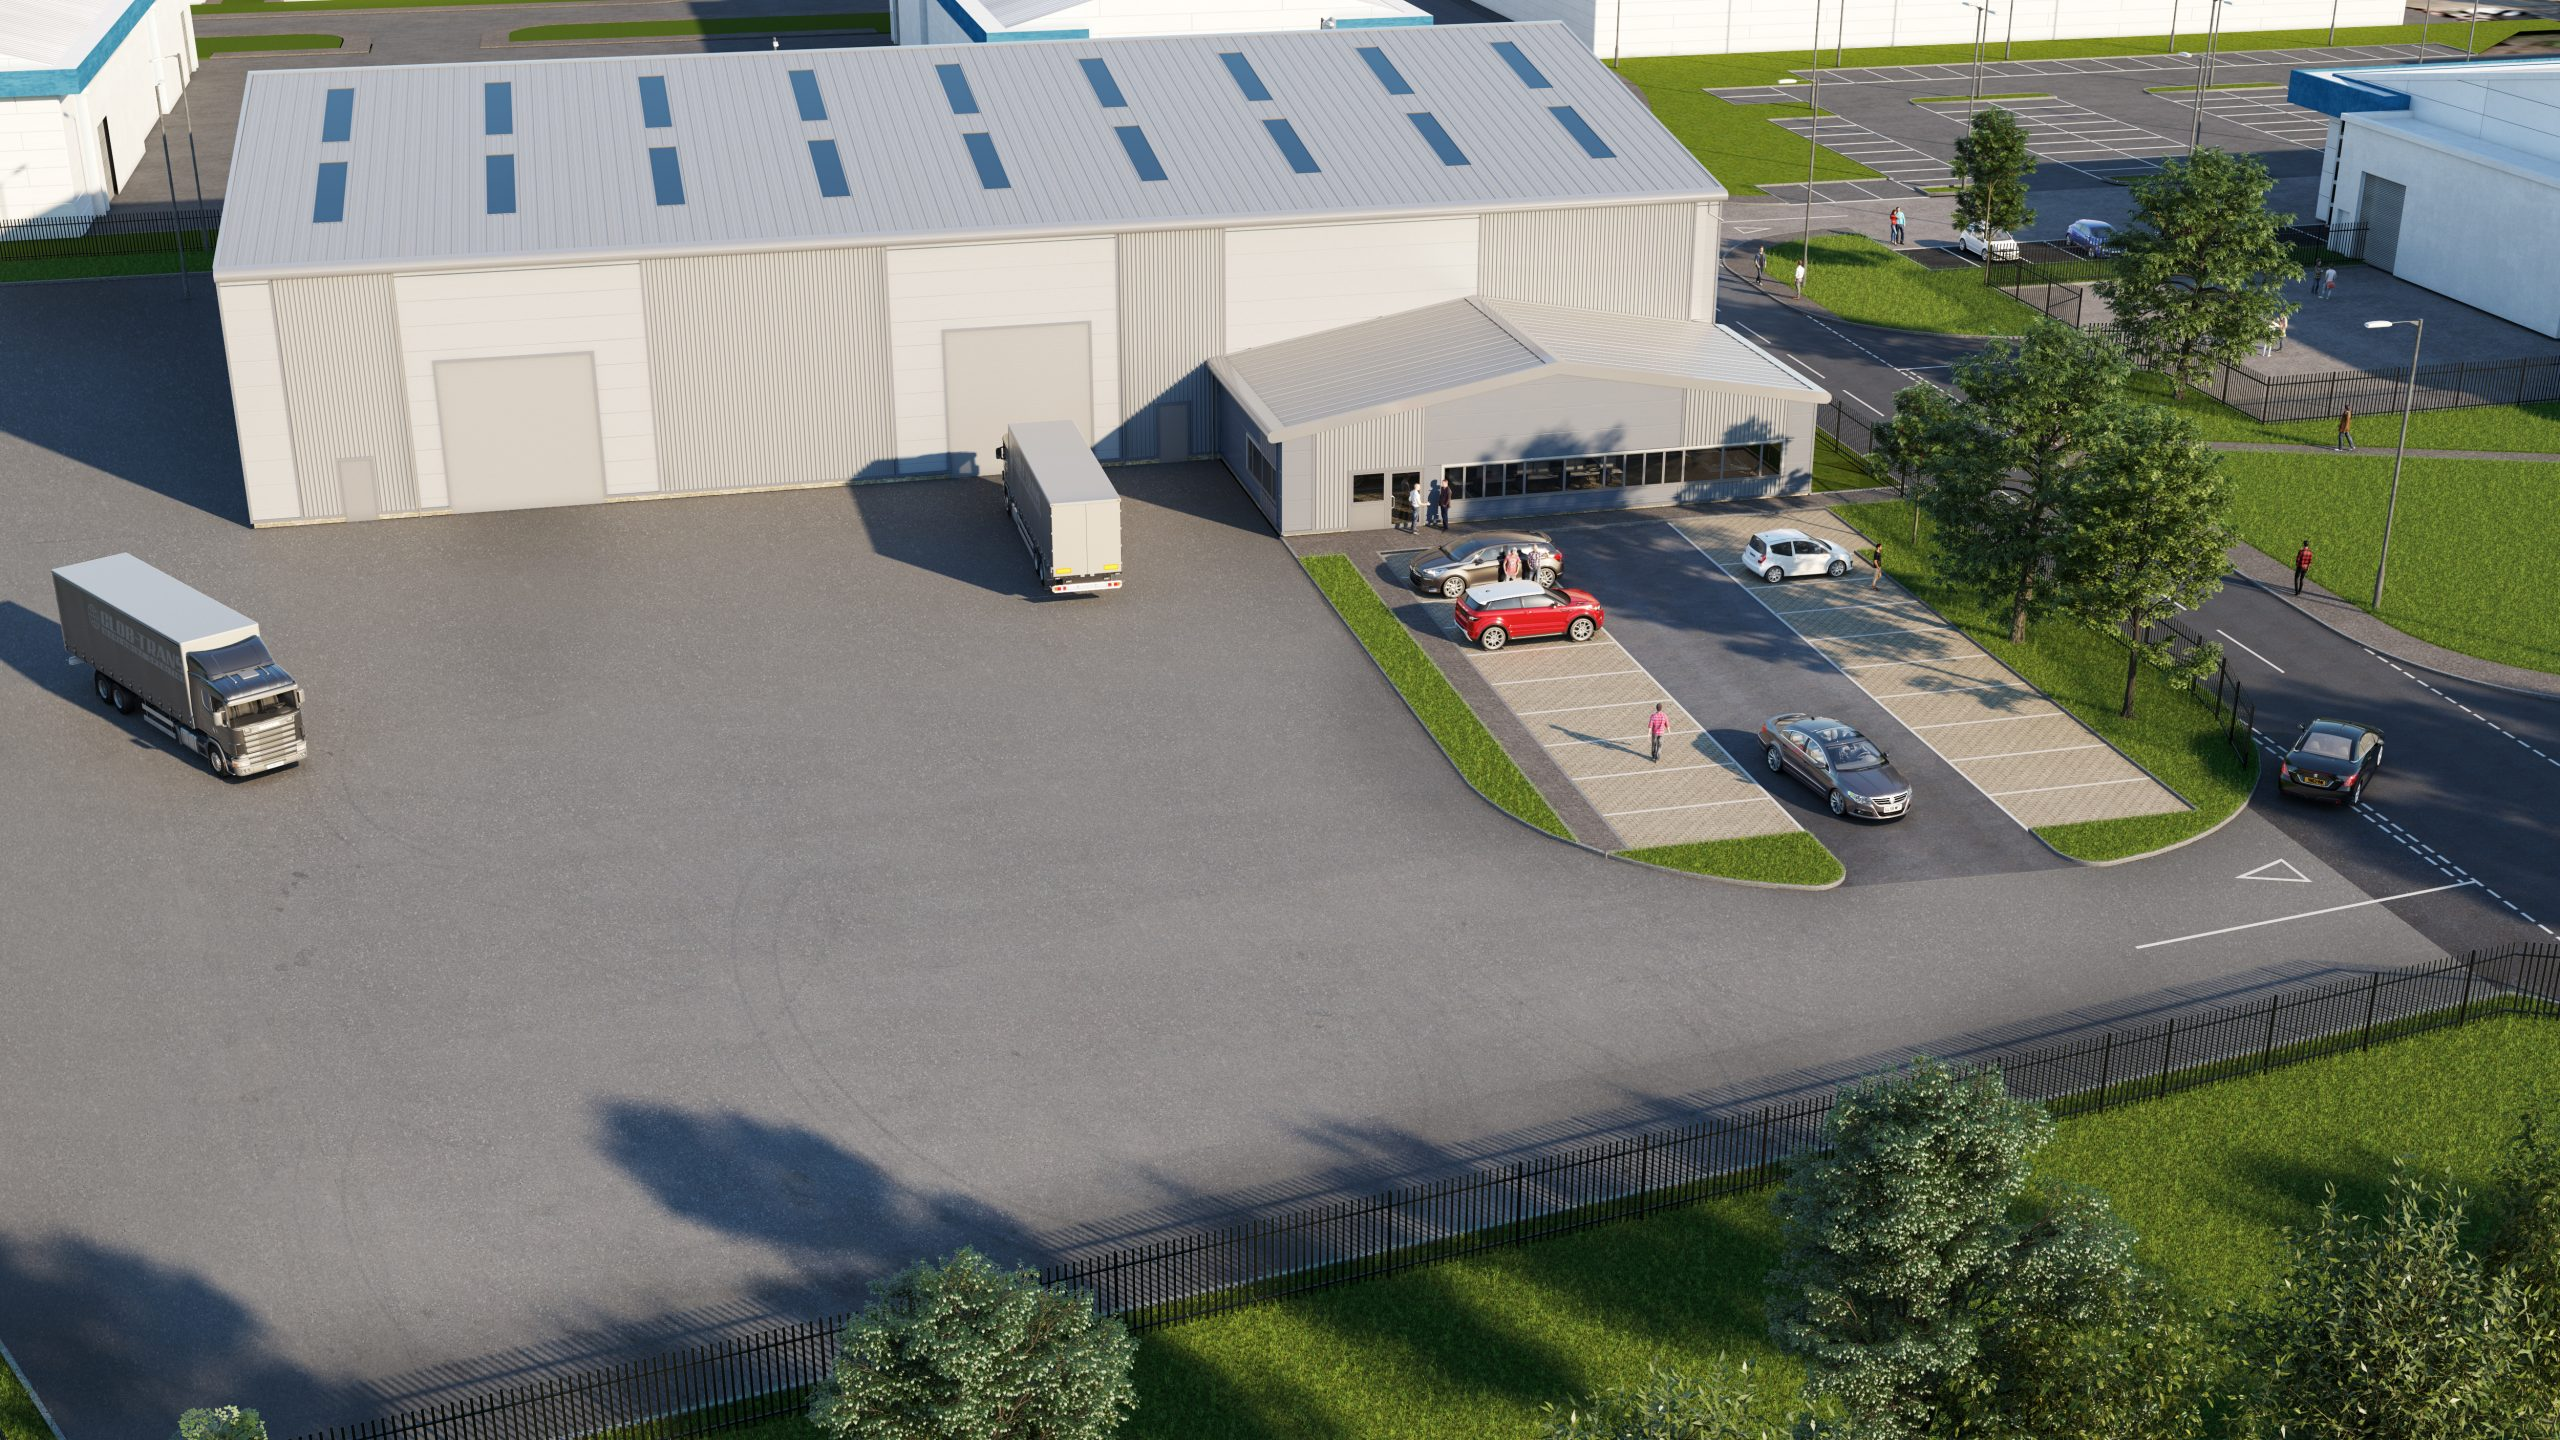 Knight Property Group appoints Clark Contracts as main contractor to deliver next phase at Langlands Commercial Park